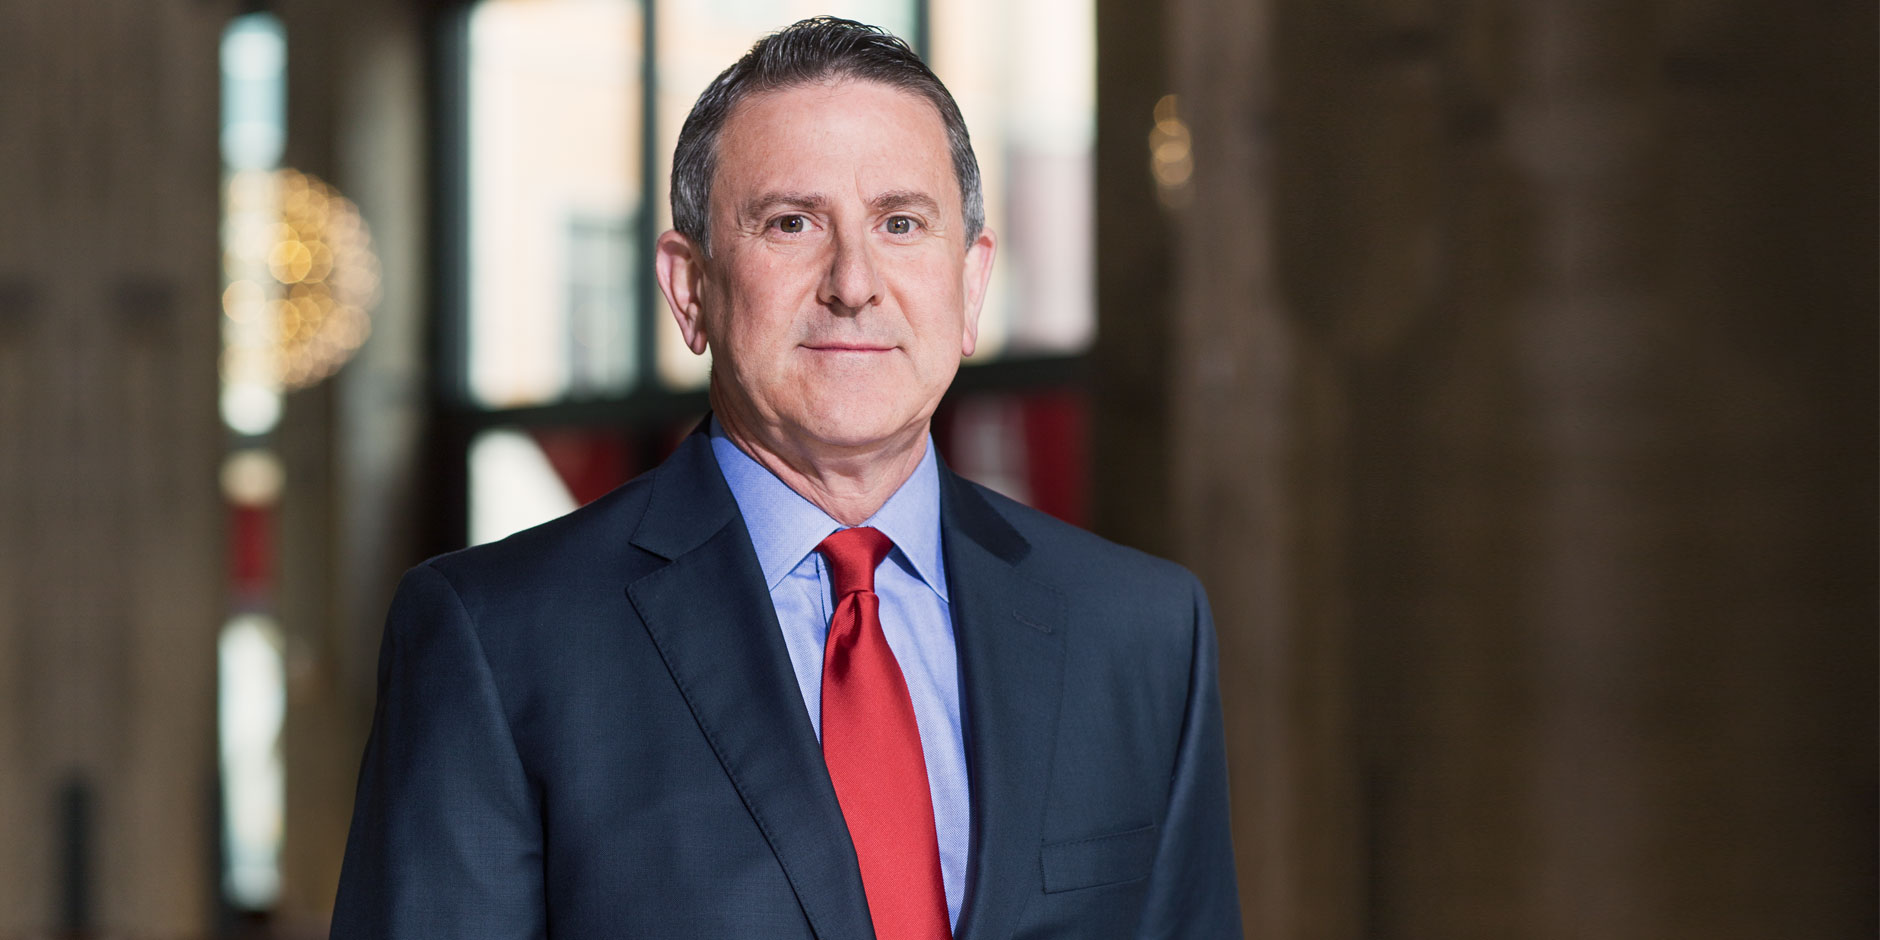 A head-and-shoulders shot of CEO Brian Cornell in a blue jacket and red tie